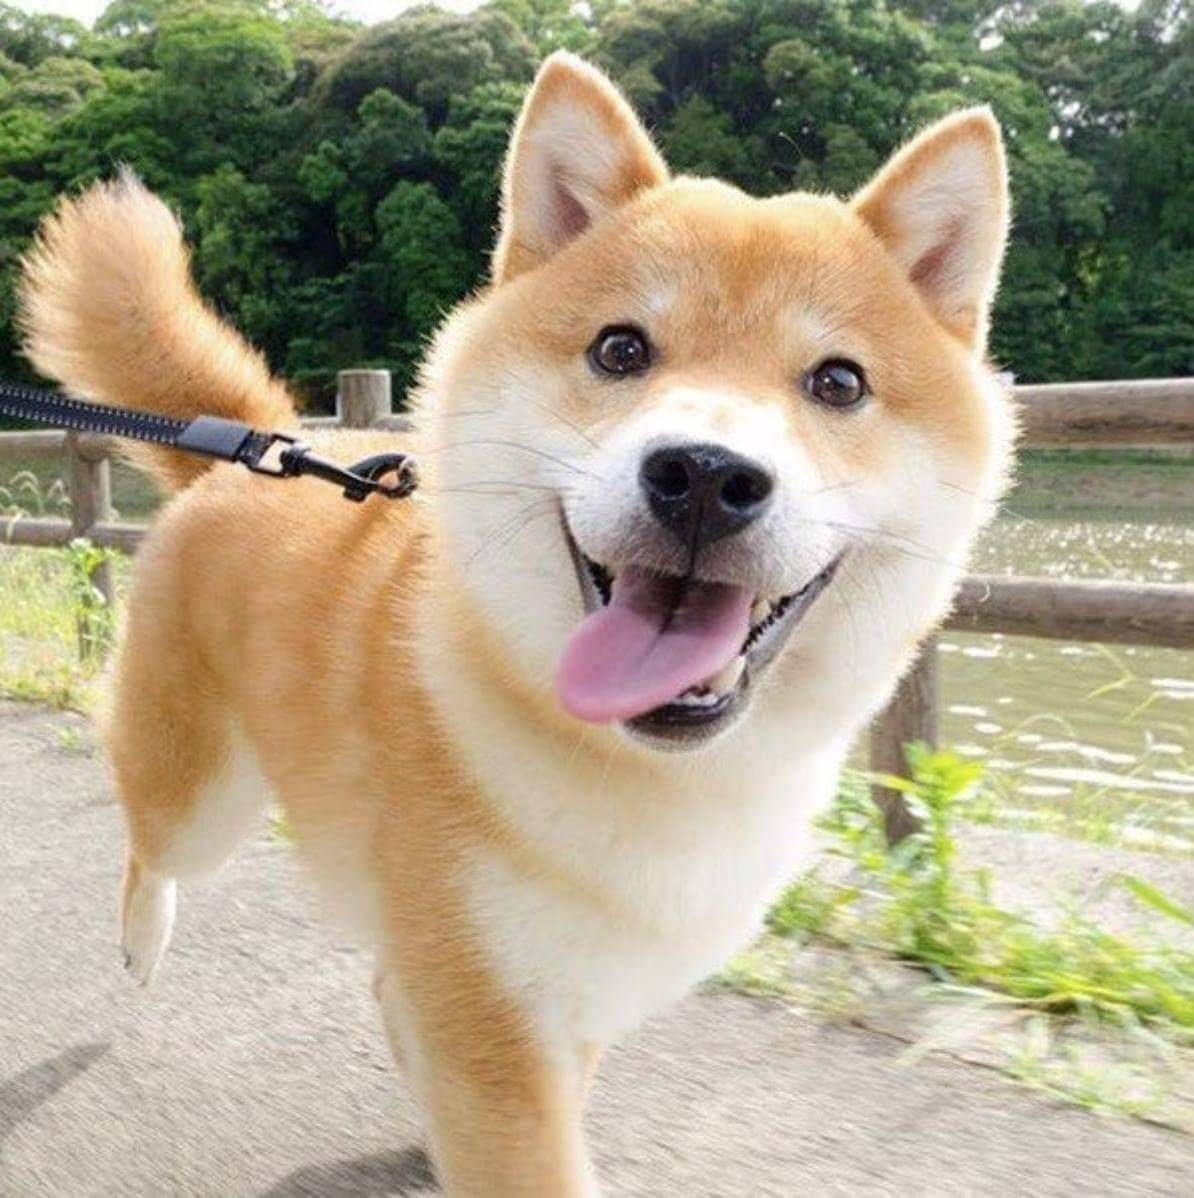 Puppies Dogs Submissions Welcome Shiba Inu Dog Shiba Inu Dog Breeds